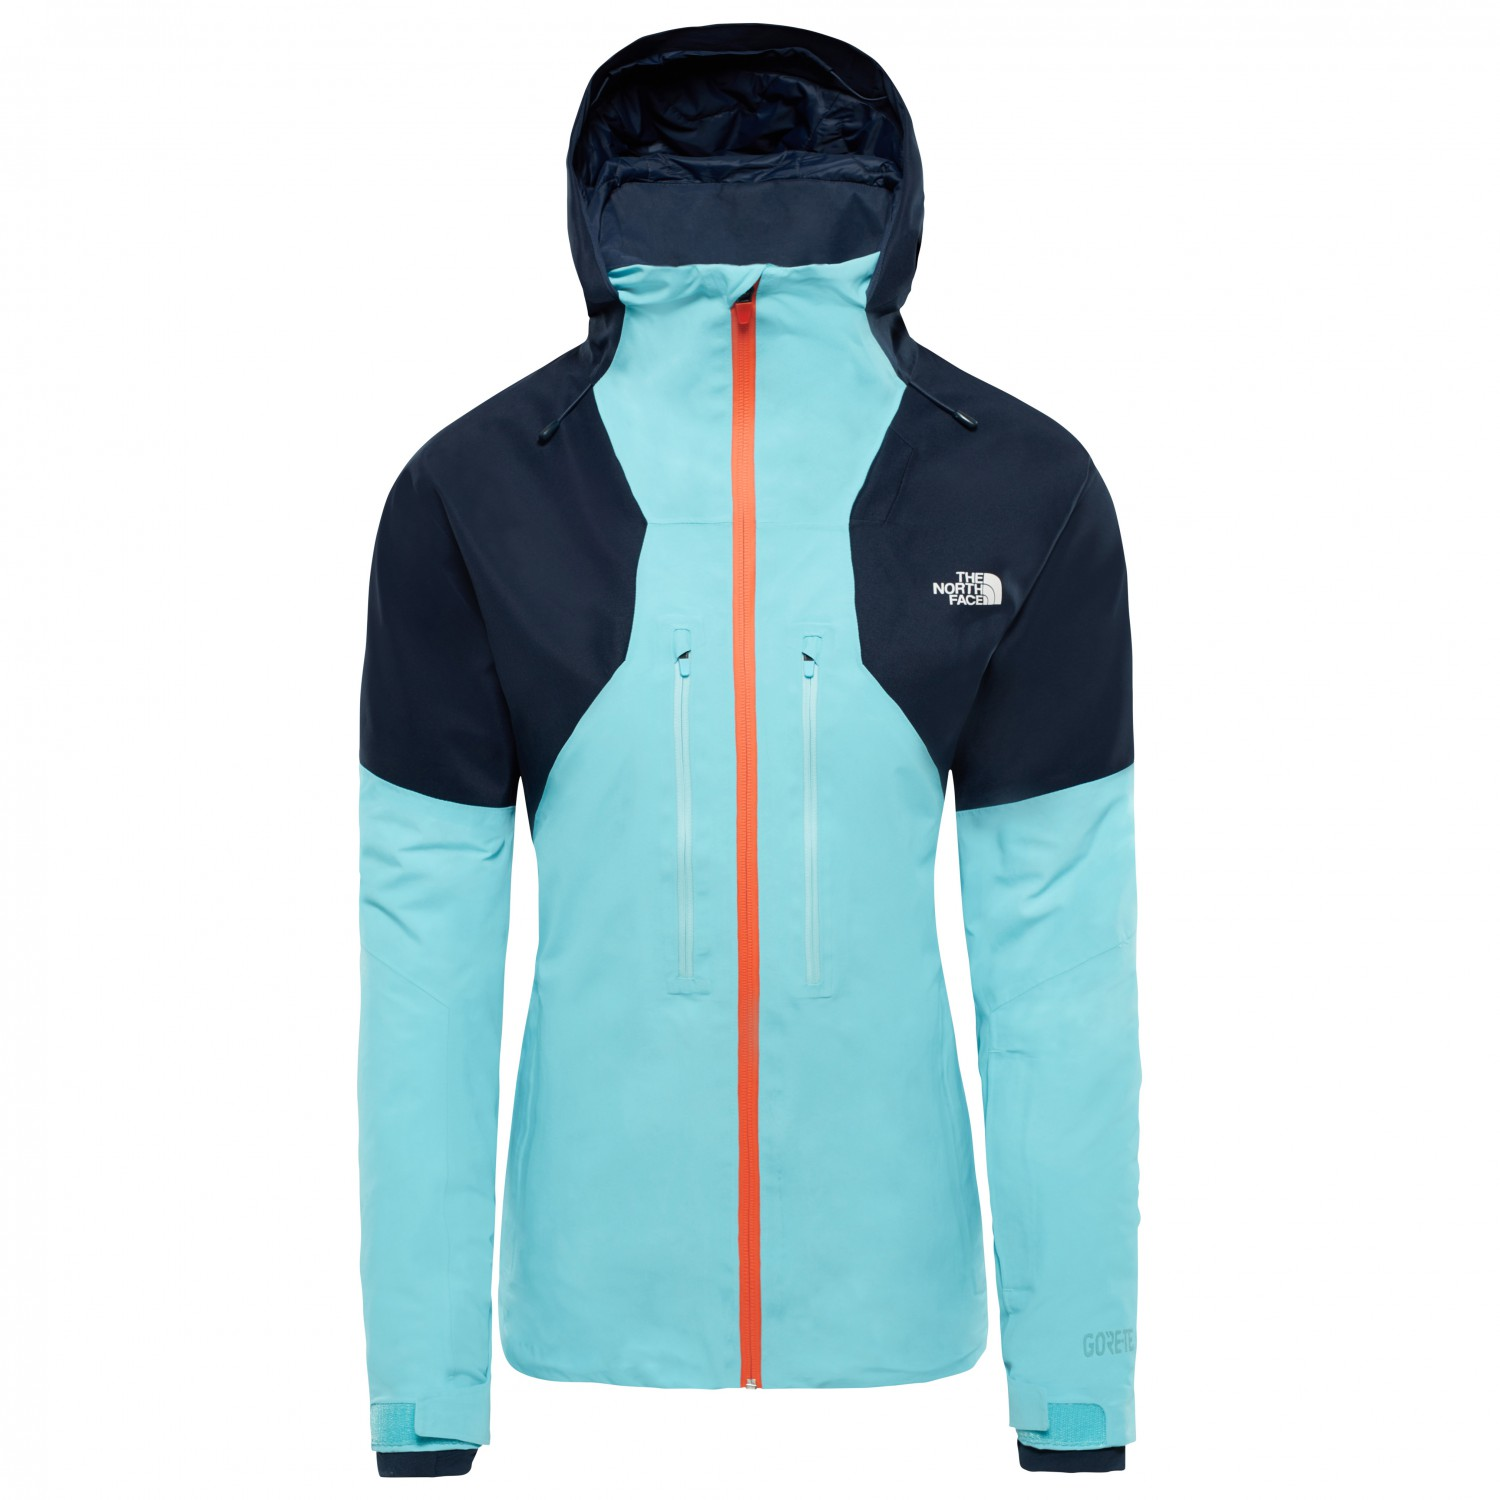 f0cd2adc2 The North Face Powder Guide Jacket - Ski Jacket Women's | Buy online ...